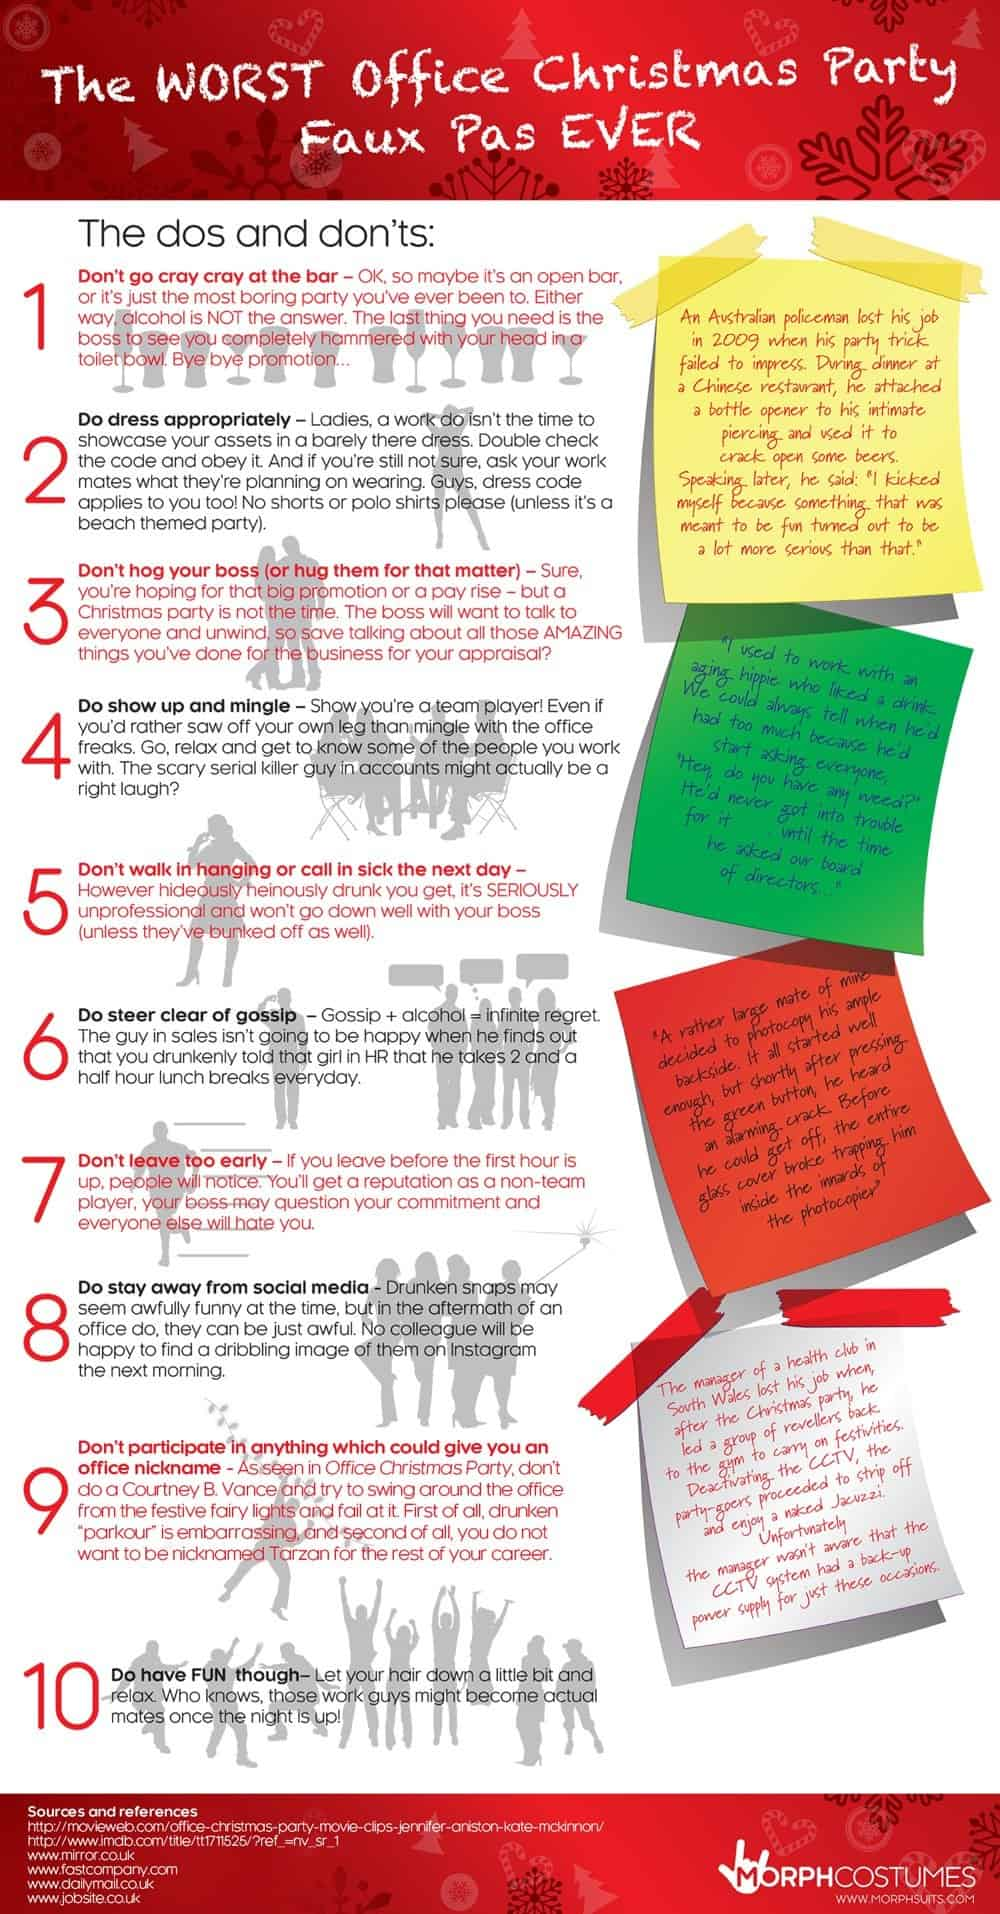 the-worst-office-christmas-party-faux-pas-ever-1000pxl-infographic